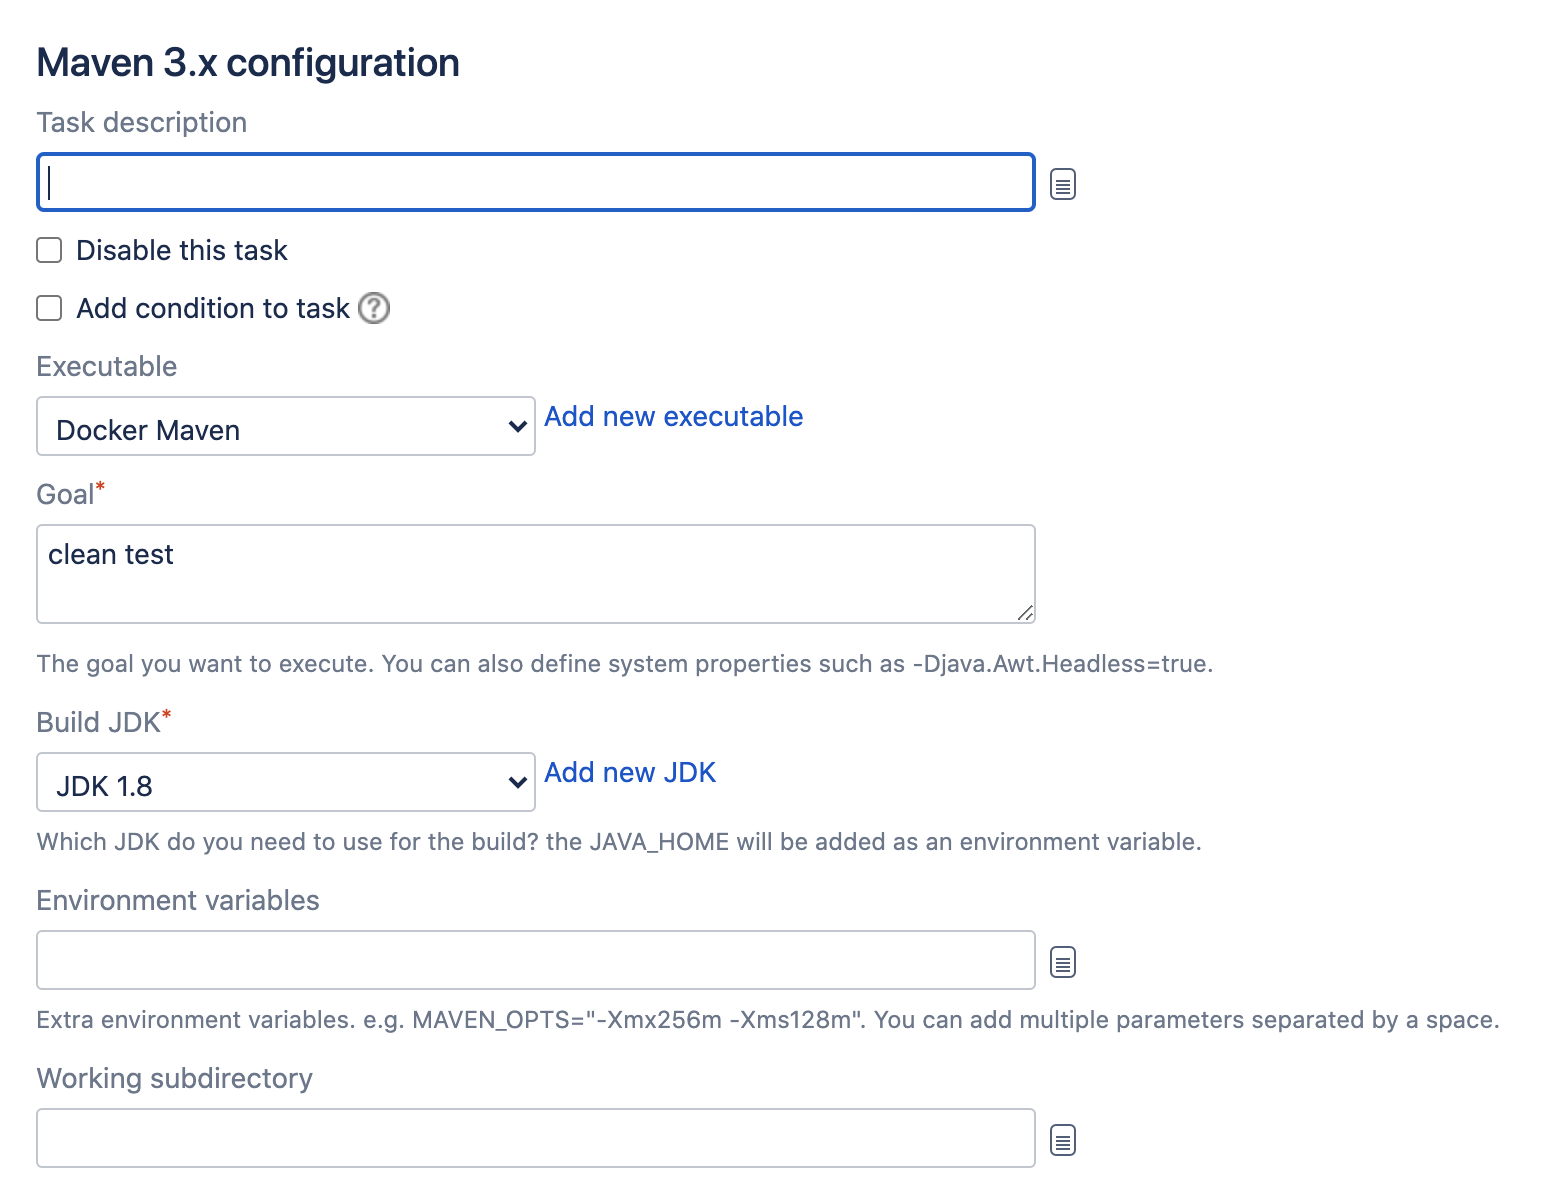 Maven configuration section in Bamboo